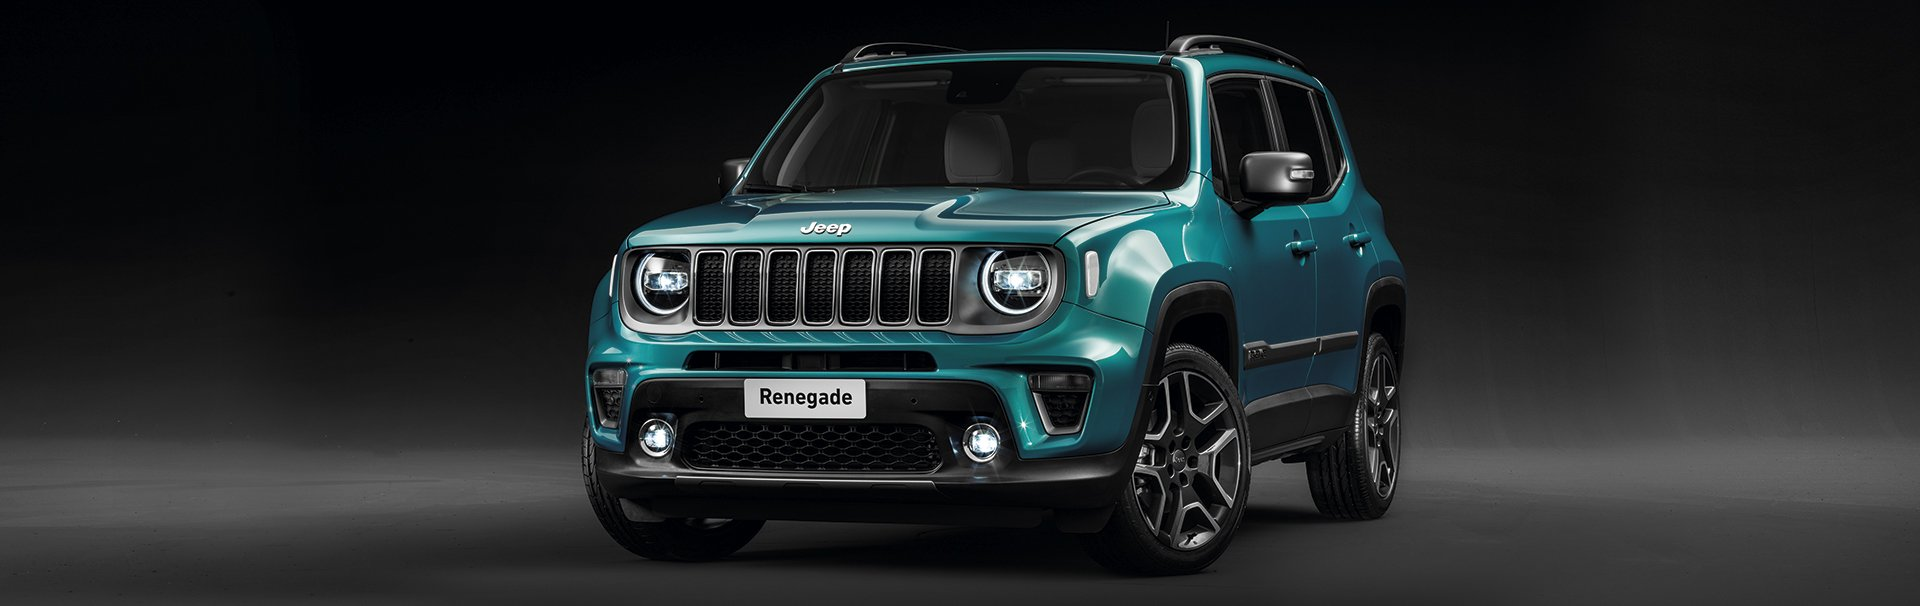 Jeep® at the 2019 Geneva Motor Show